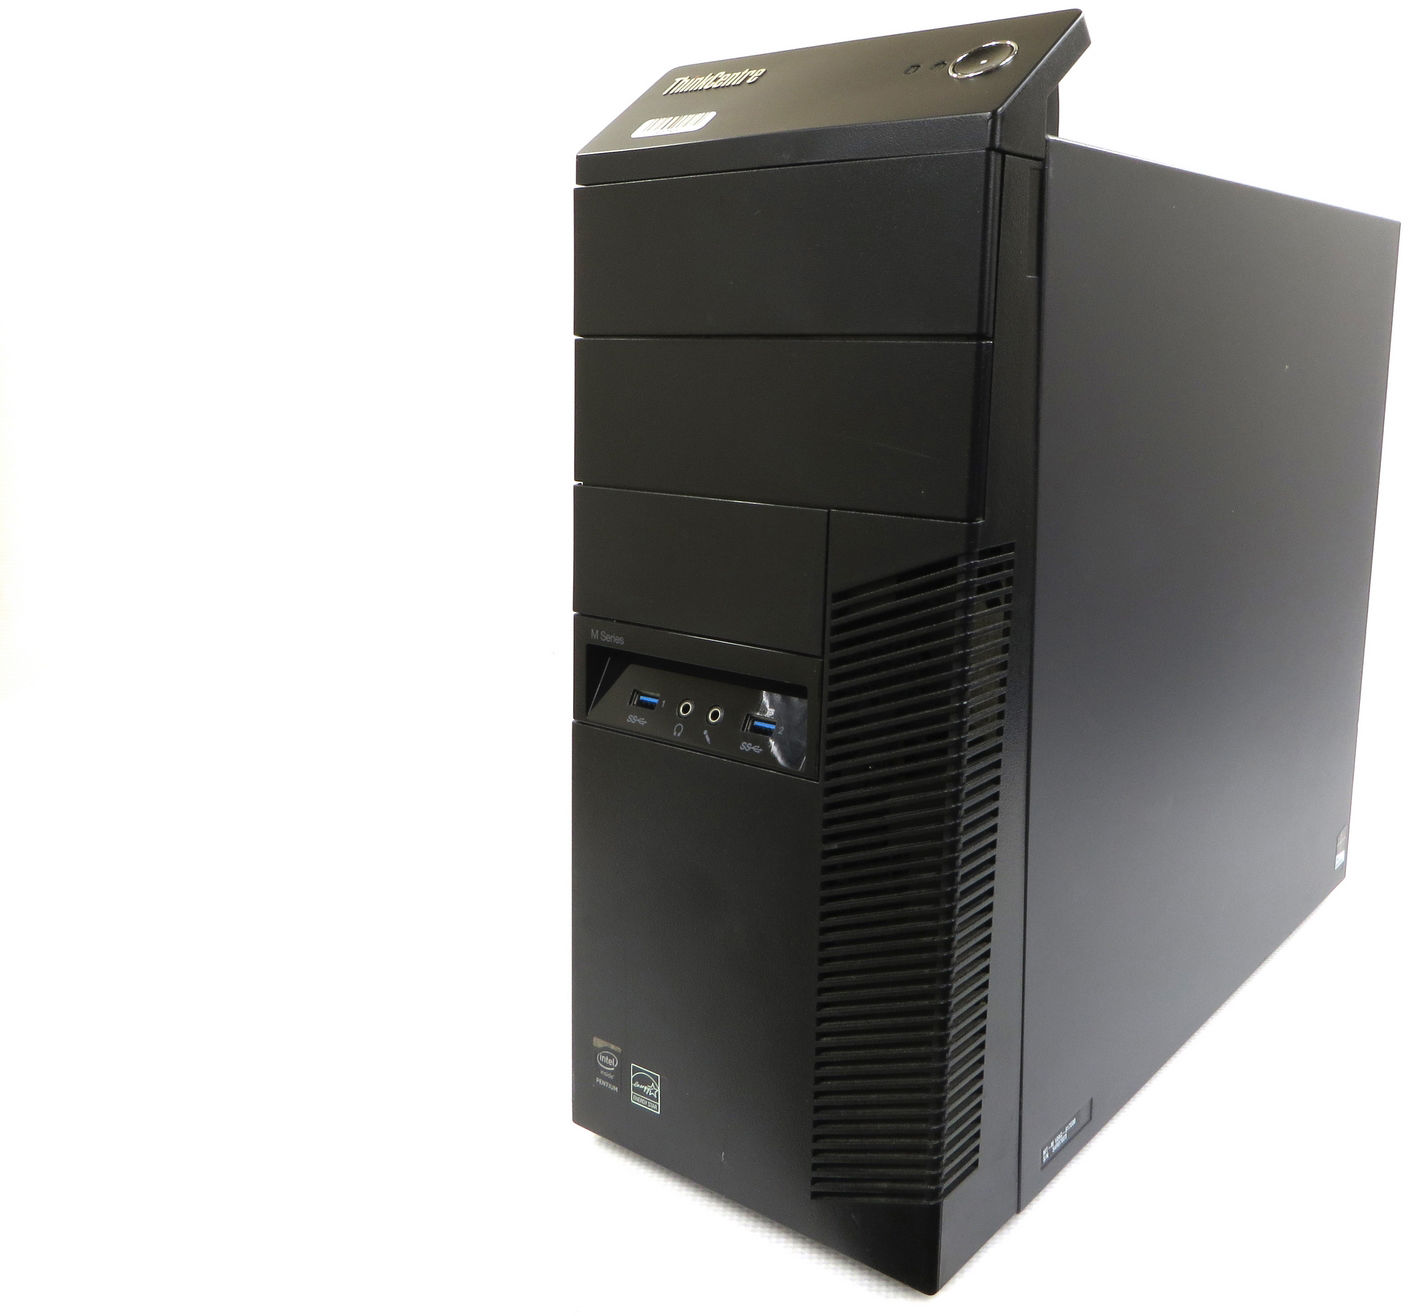 Komputer Lenovo ThinkCentre M83p MT Intel i7-4790 4x4.00GHz 8GB 500GB Windows 7/8/10 Pro